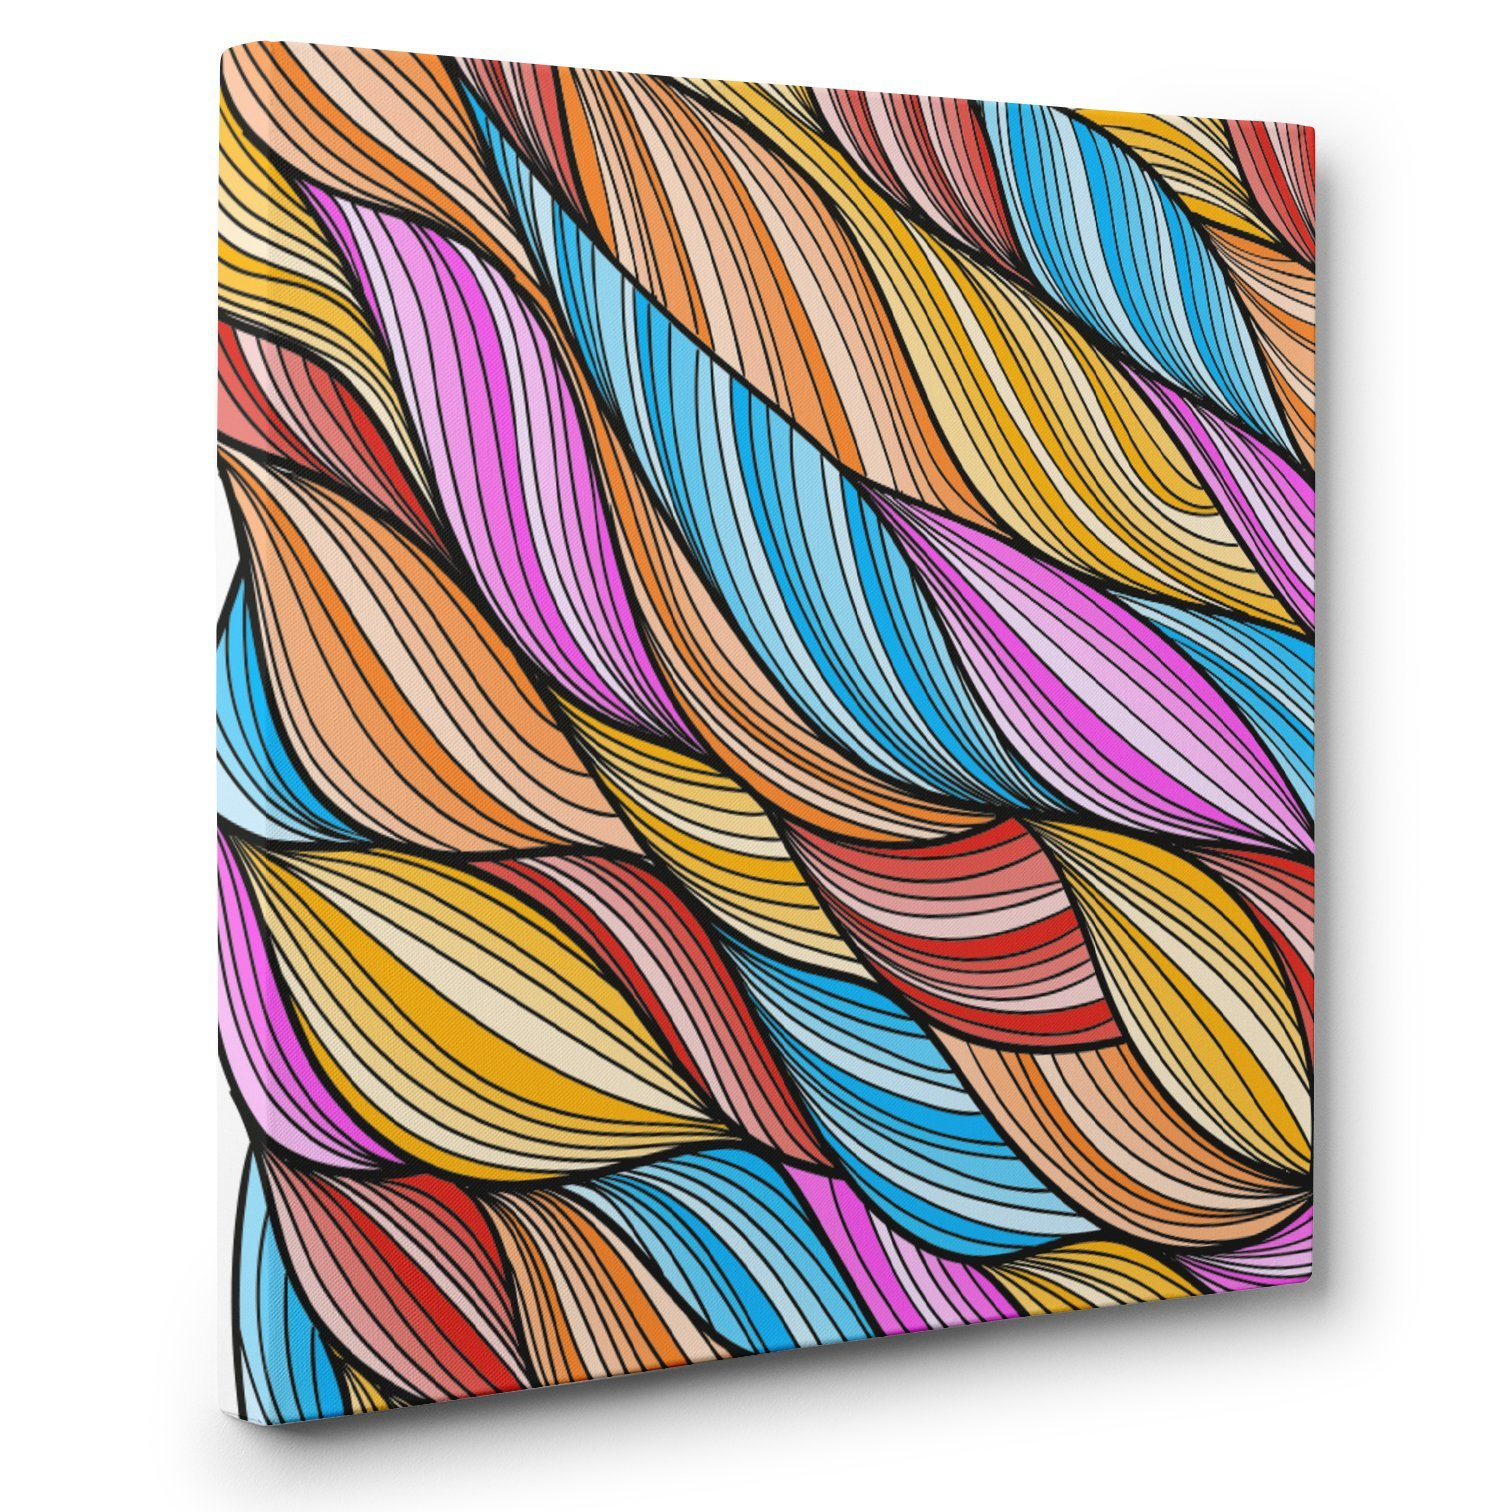 Colorful Abstract Art CANVAS Wall Art Home Décor by Paper Blast